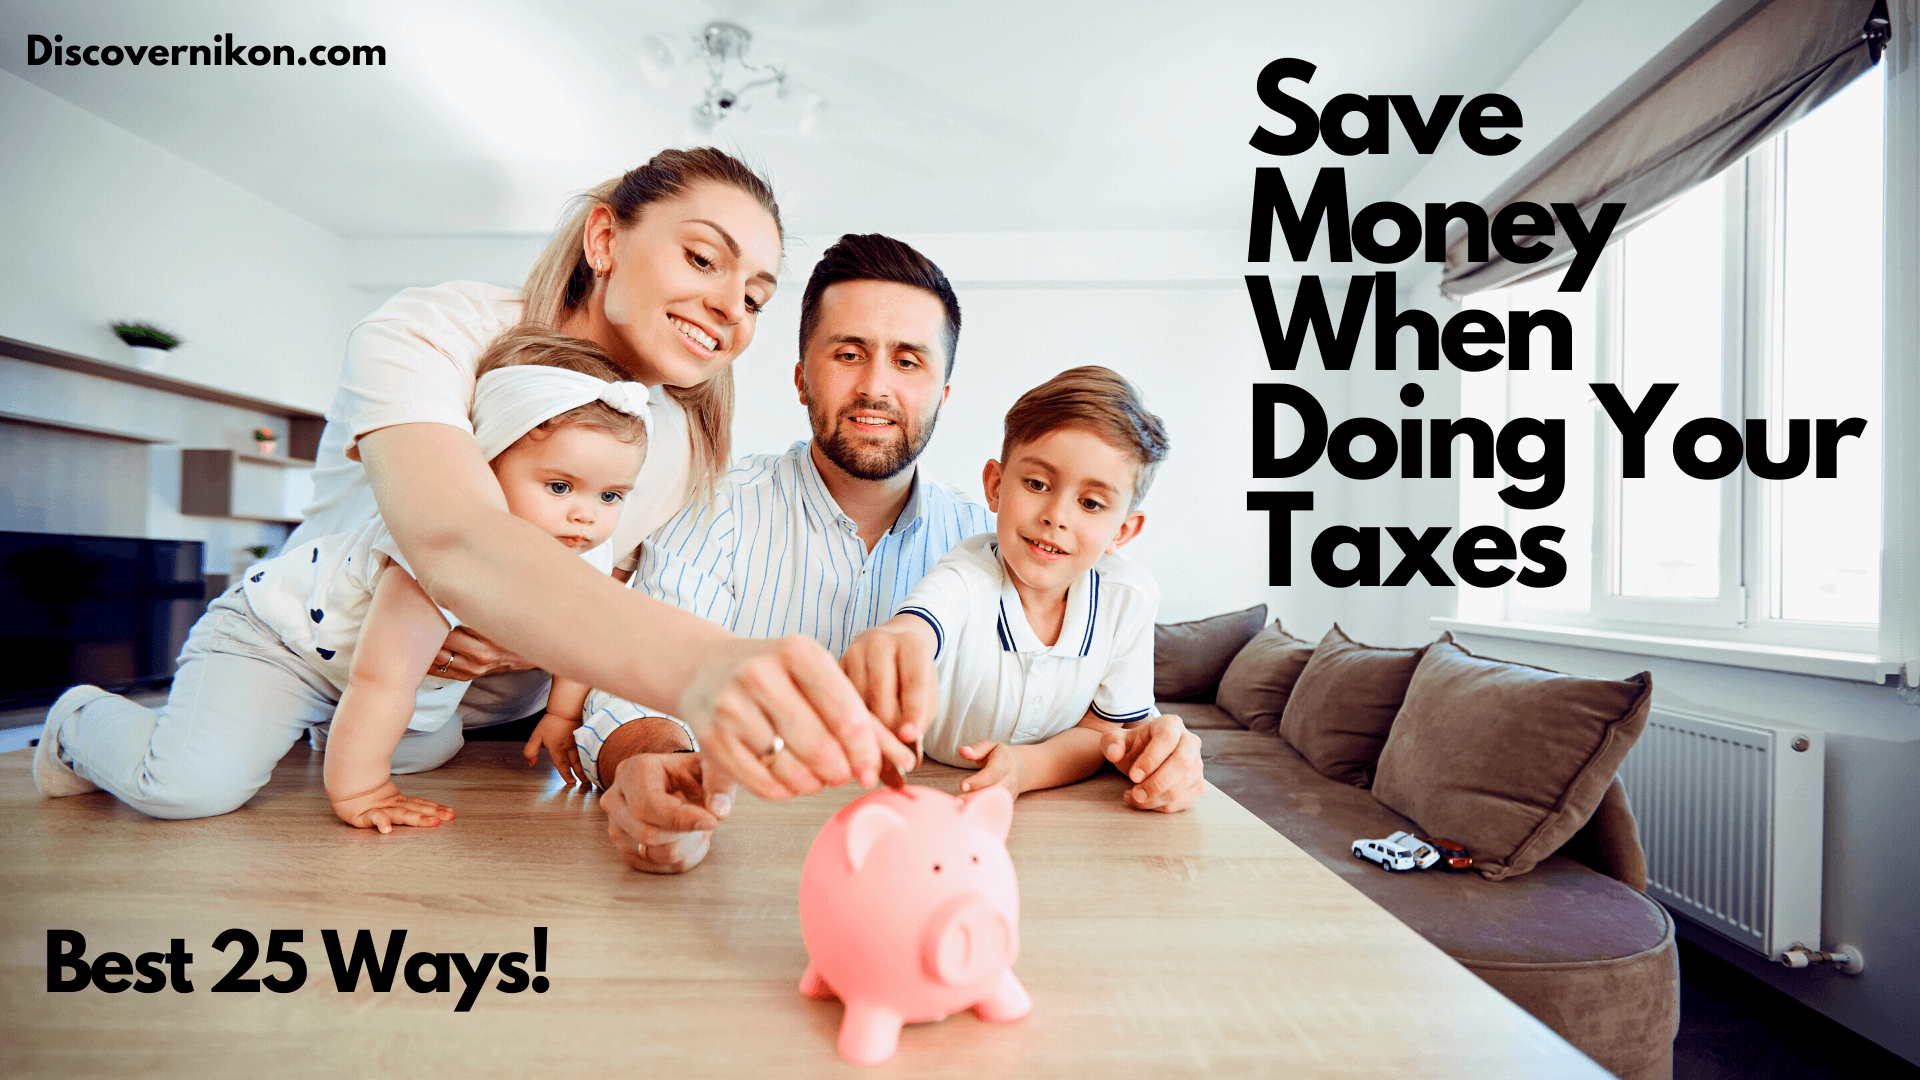 Save Money When Doing Your Taxes